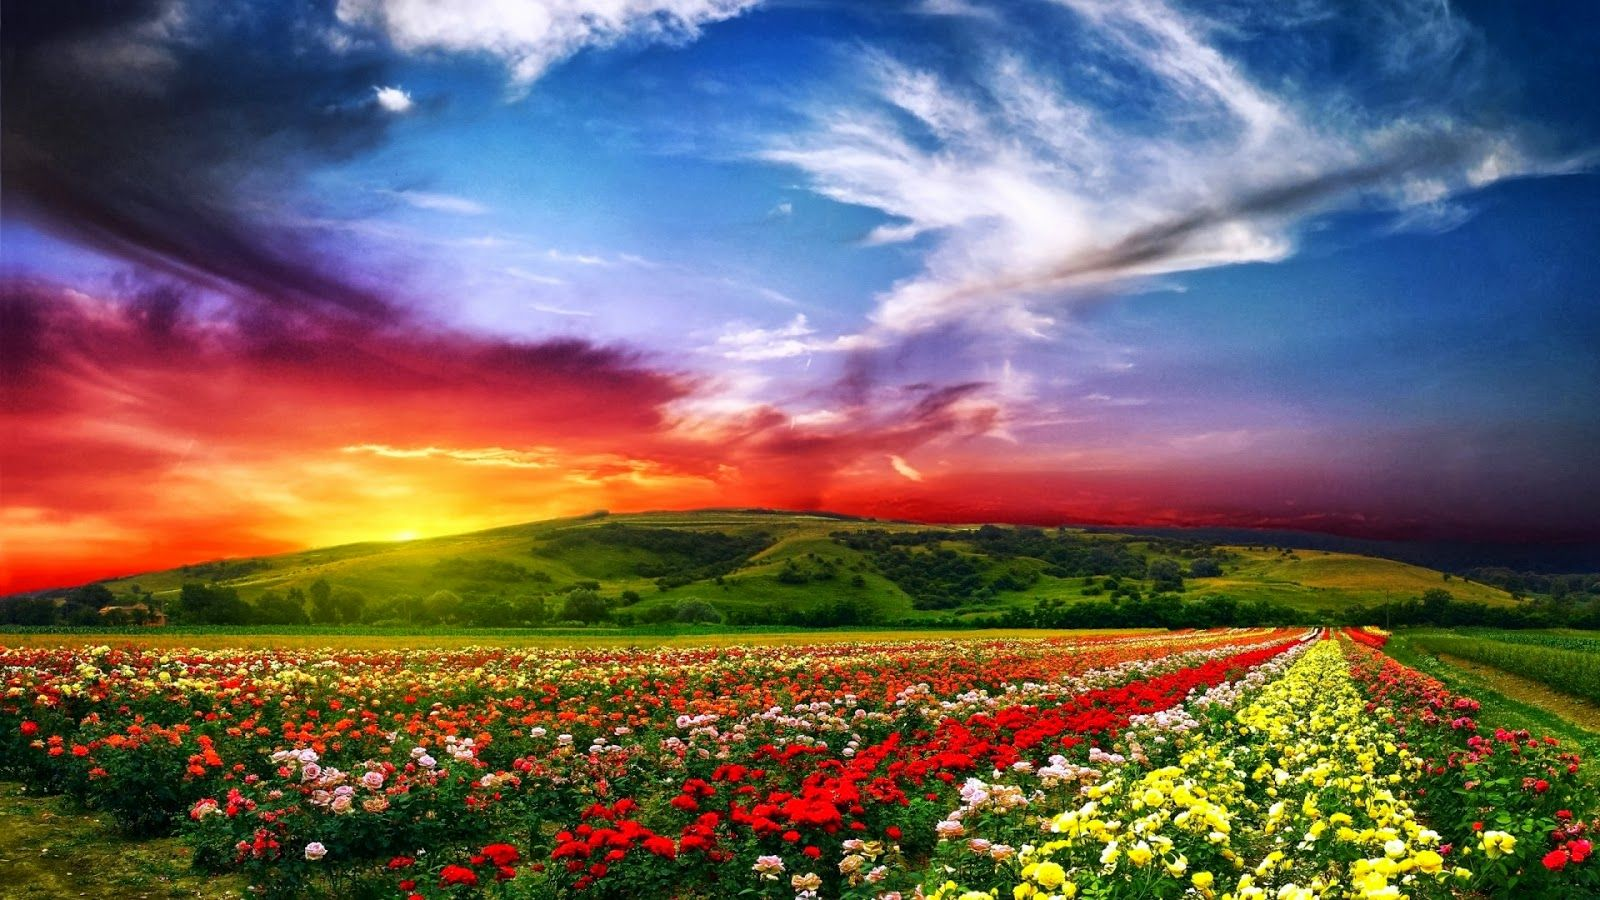 Beautiful Background Images Free Download